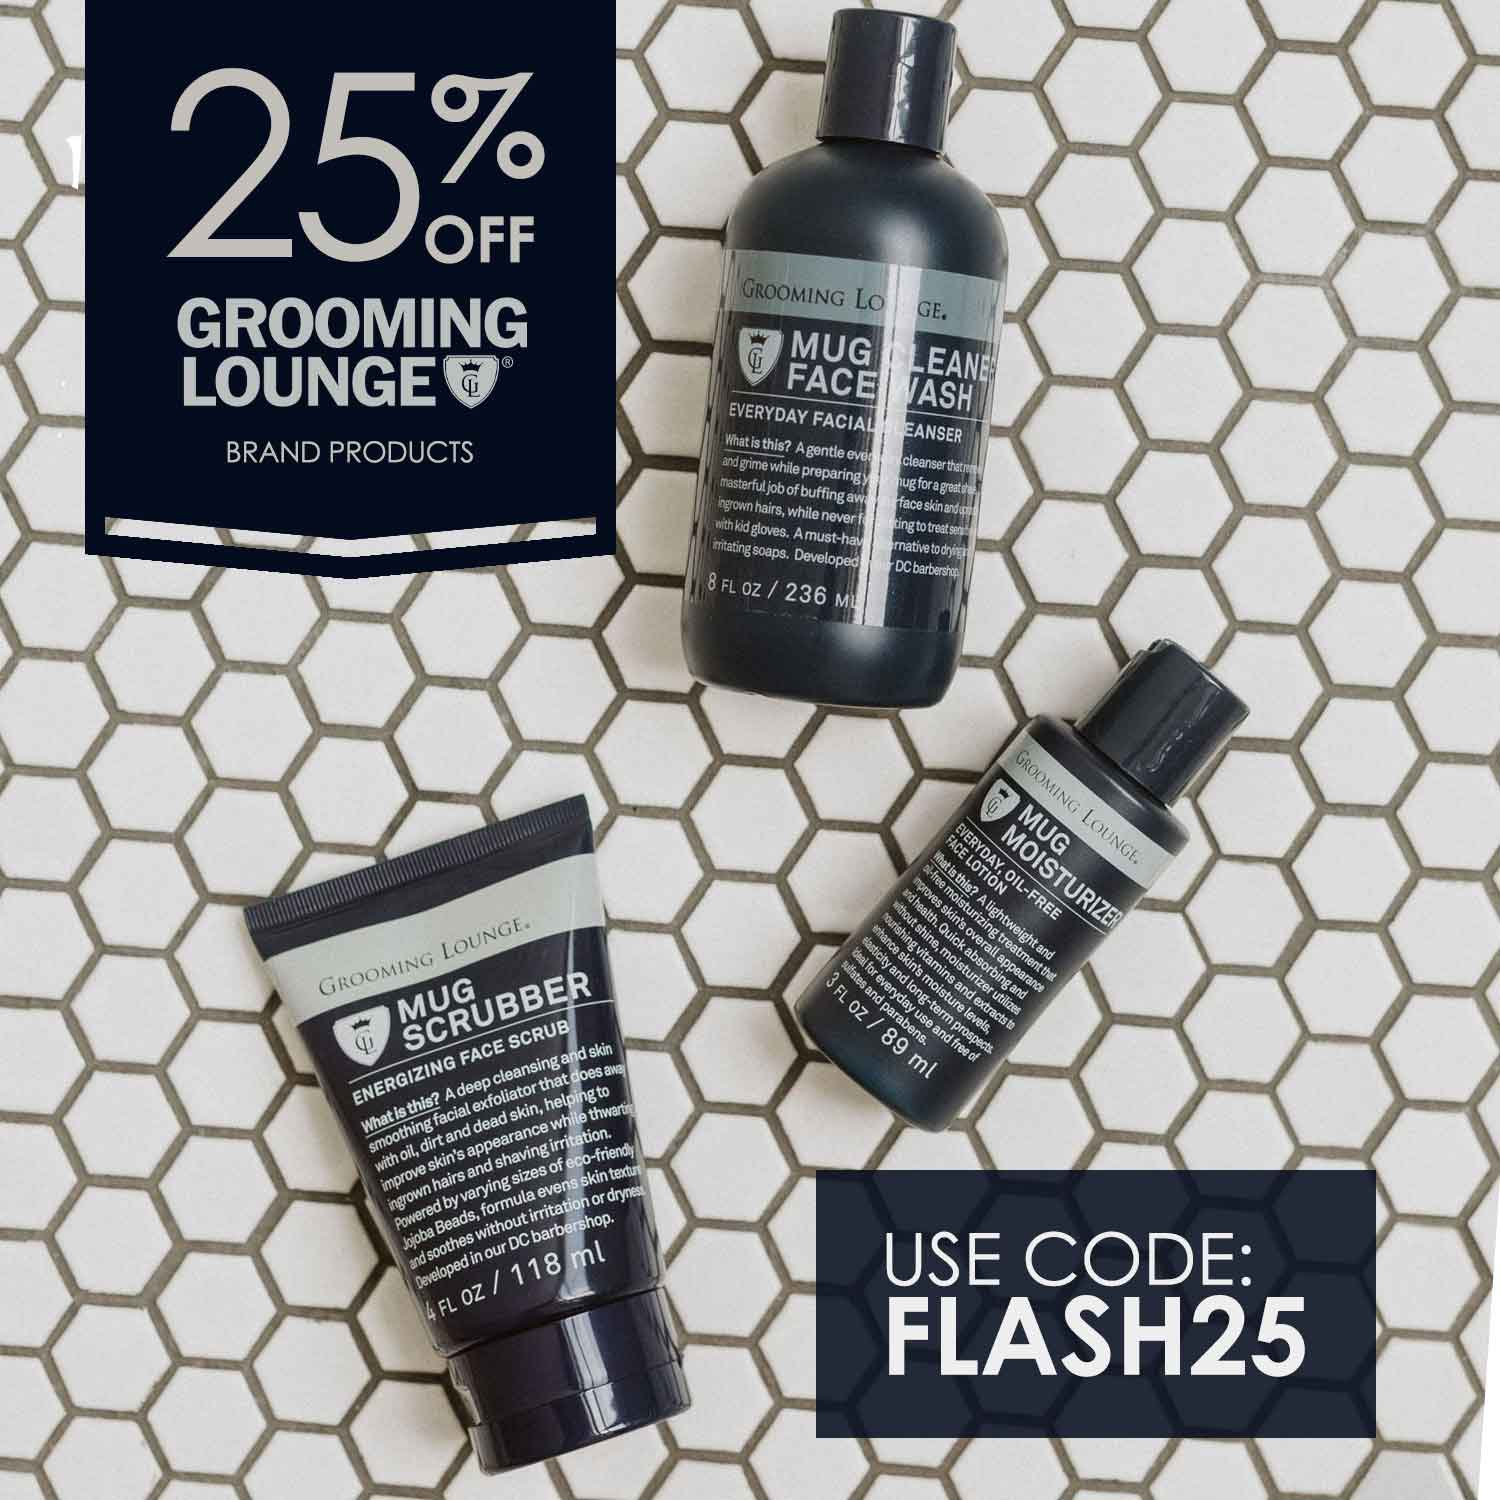 Save 25% On All Grooming Lounge Brand Products